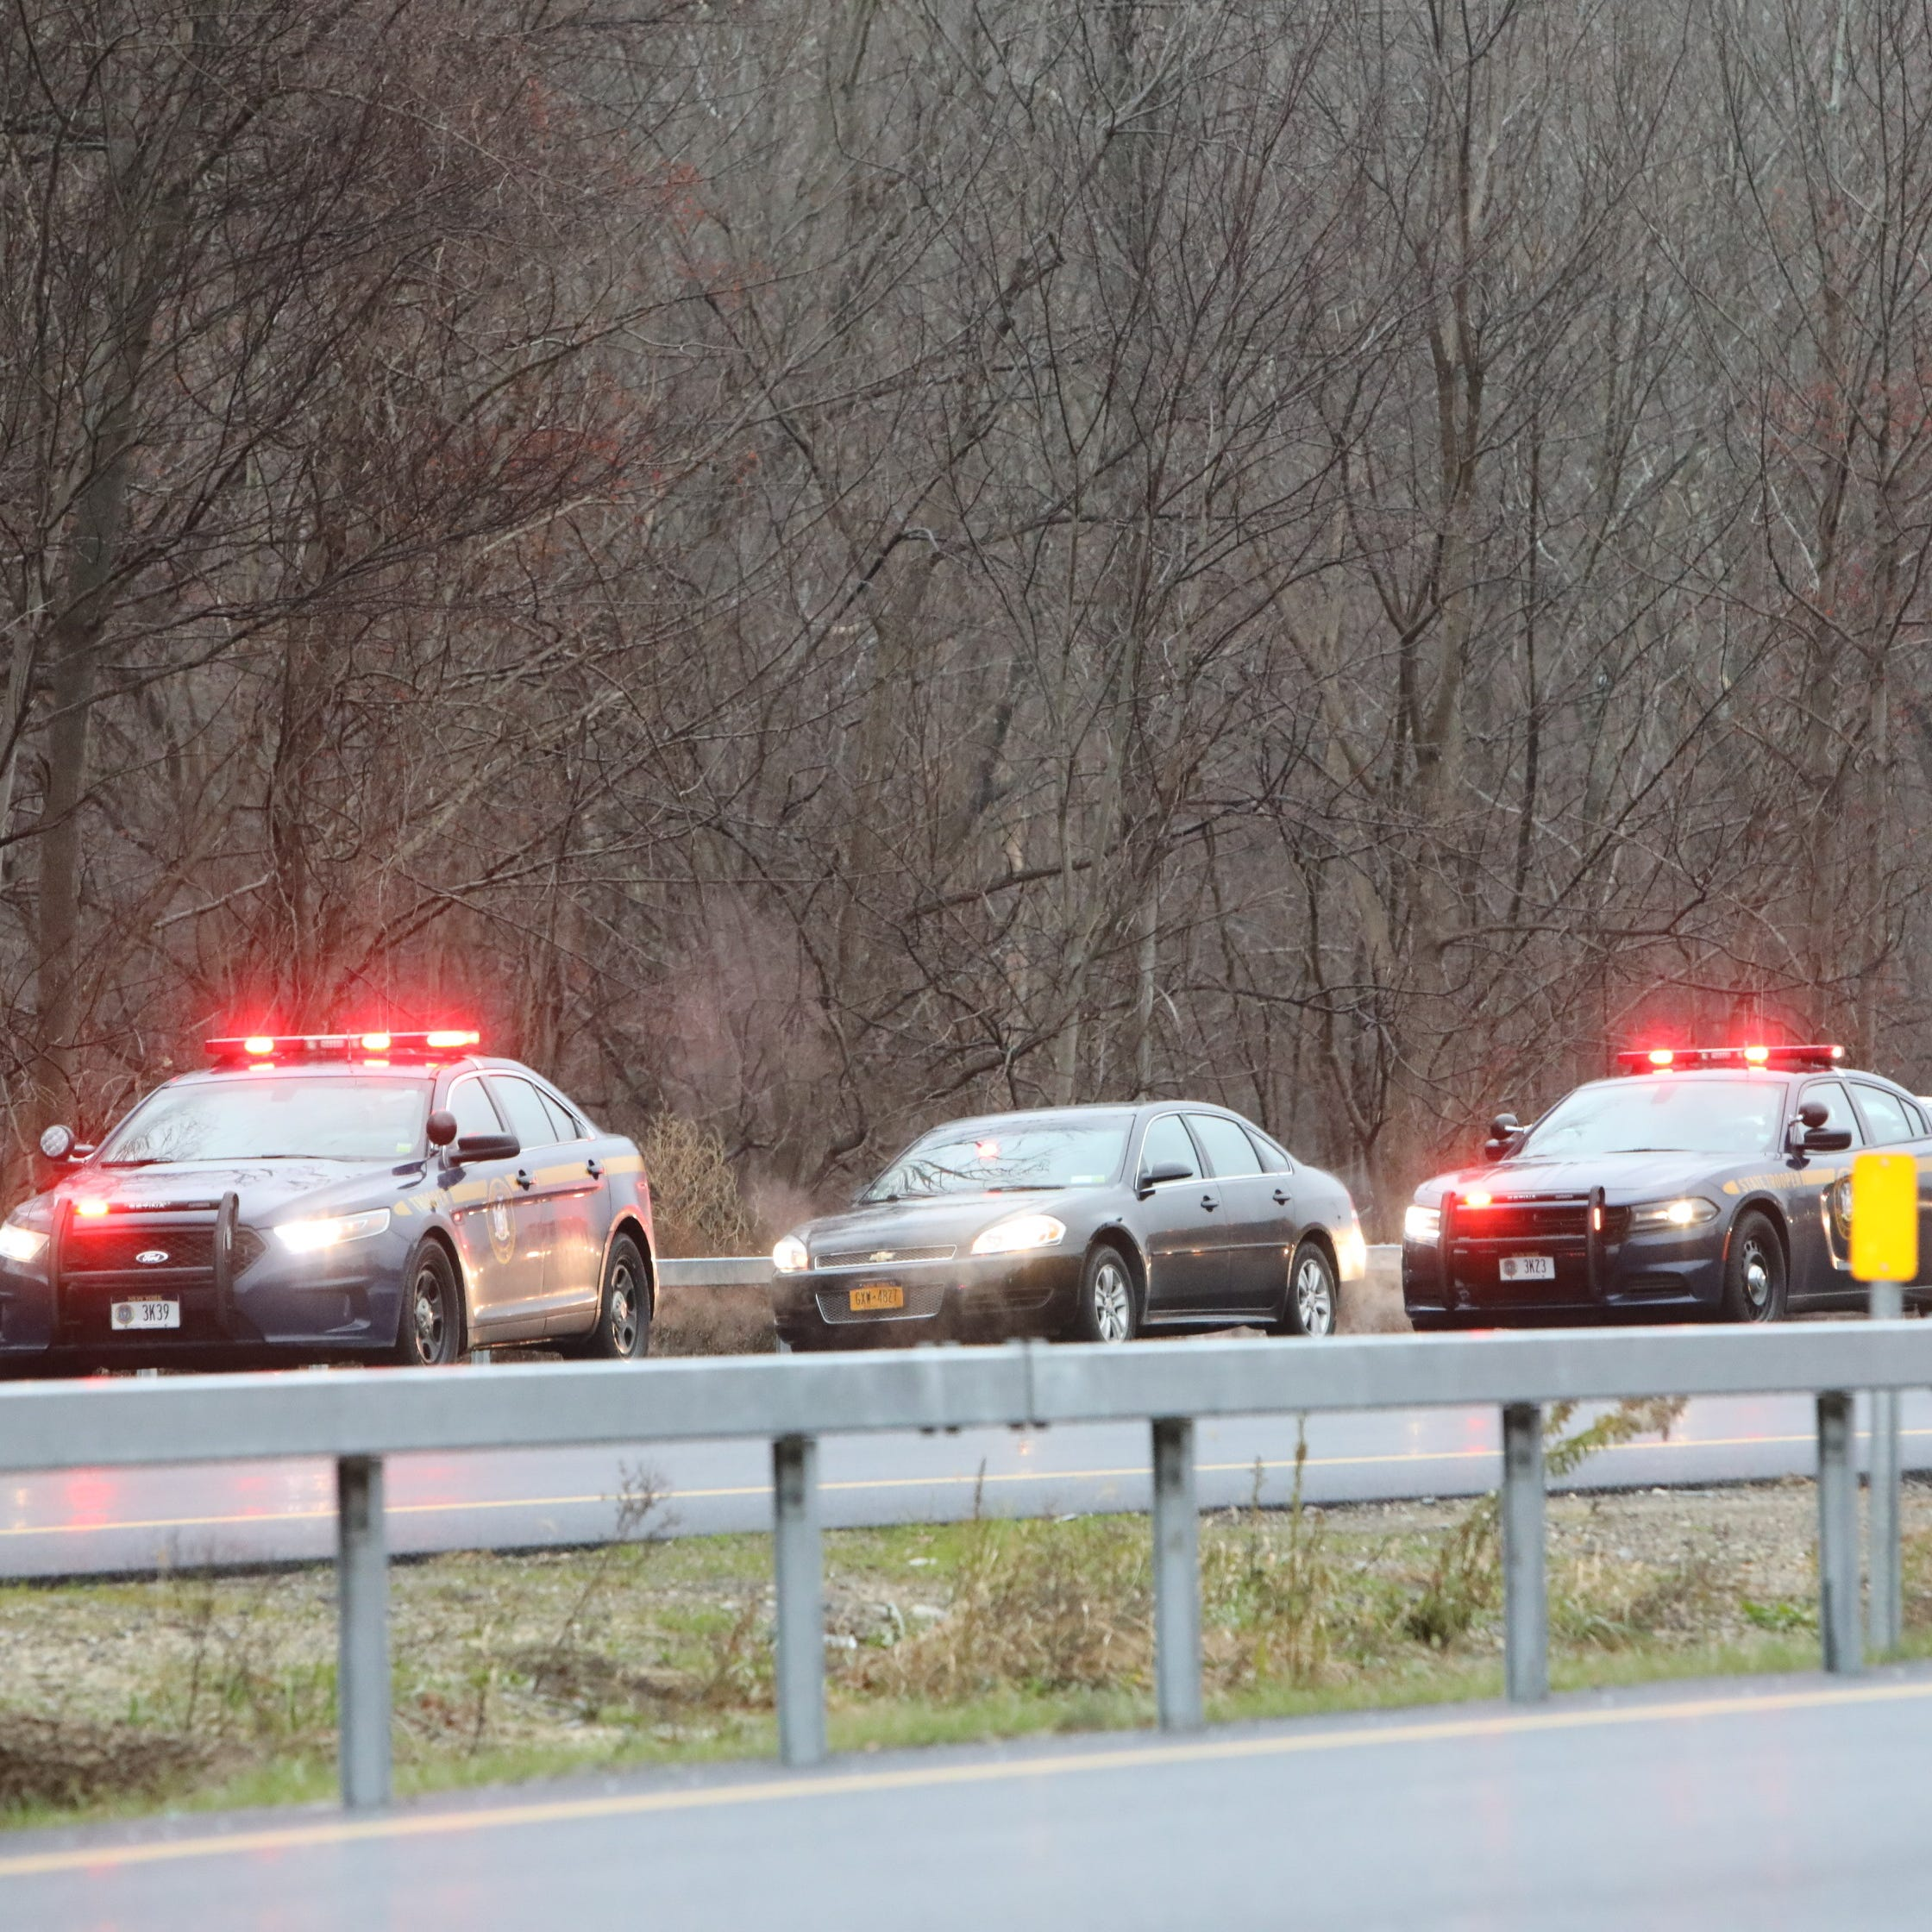 Road rage: One person arrested in I-684 traffic jam